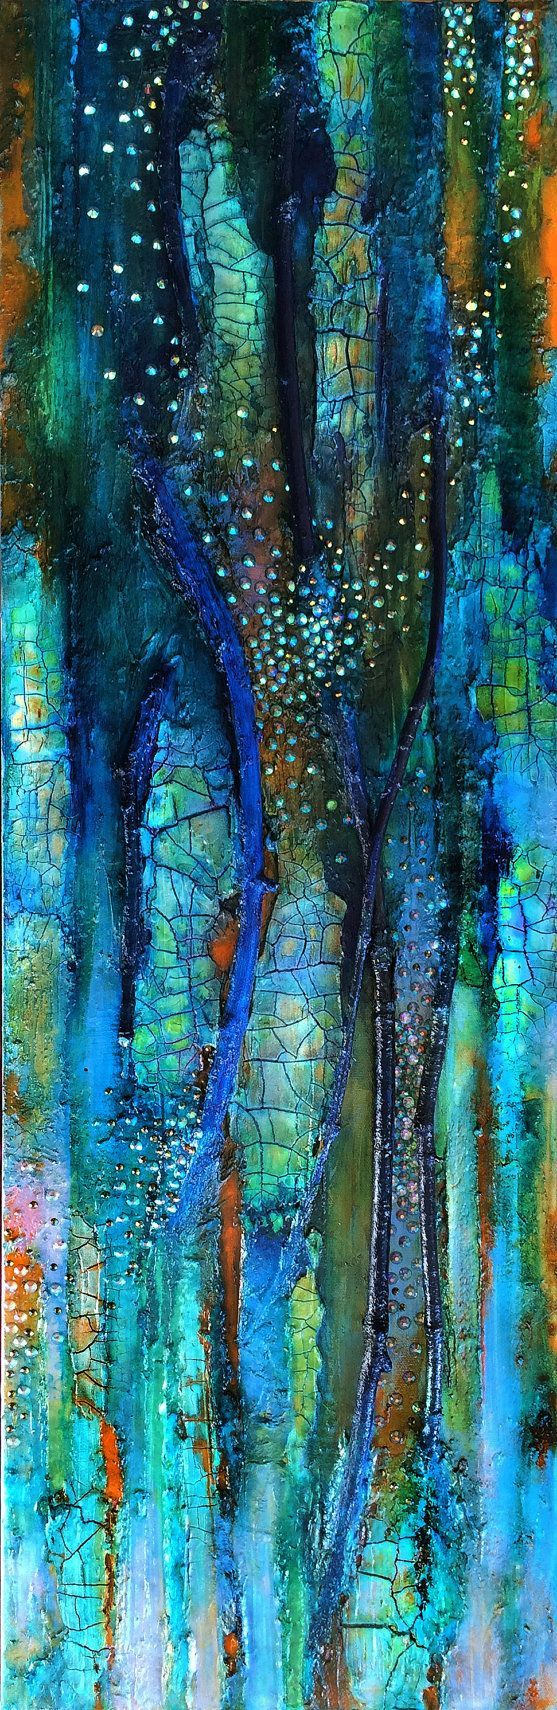 Mixed media canvas Eternal Spring crackle painting by ABYSSIMO